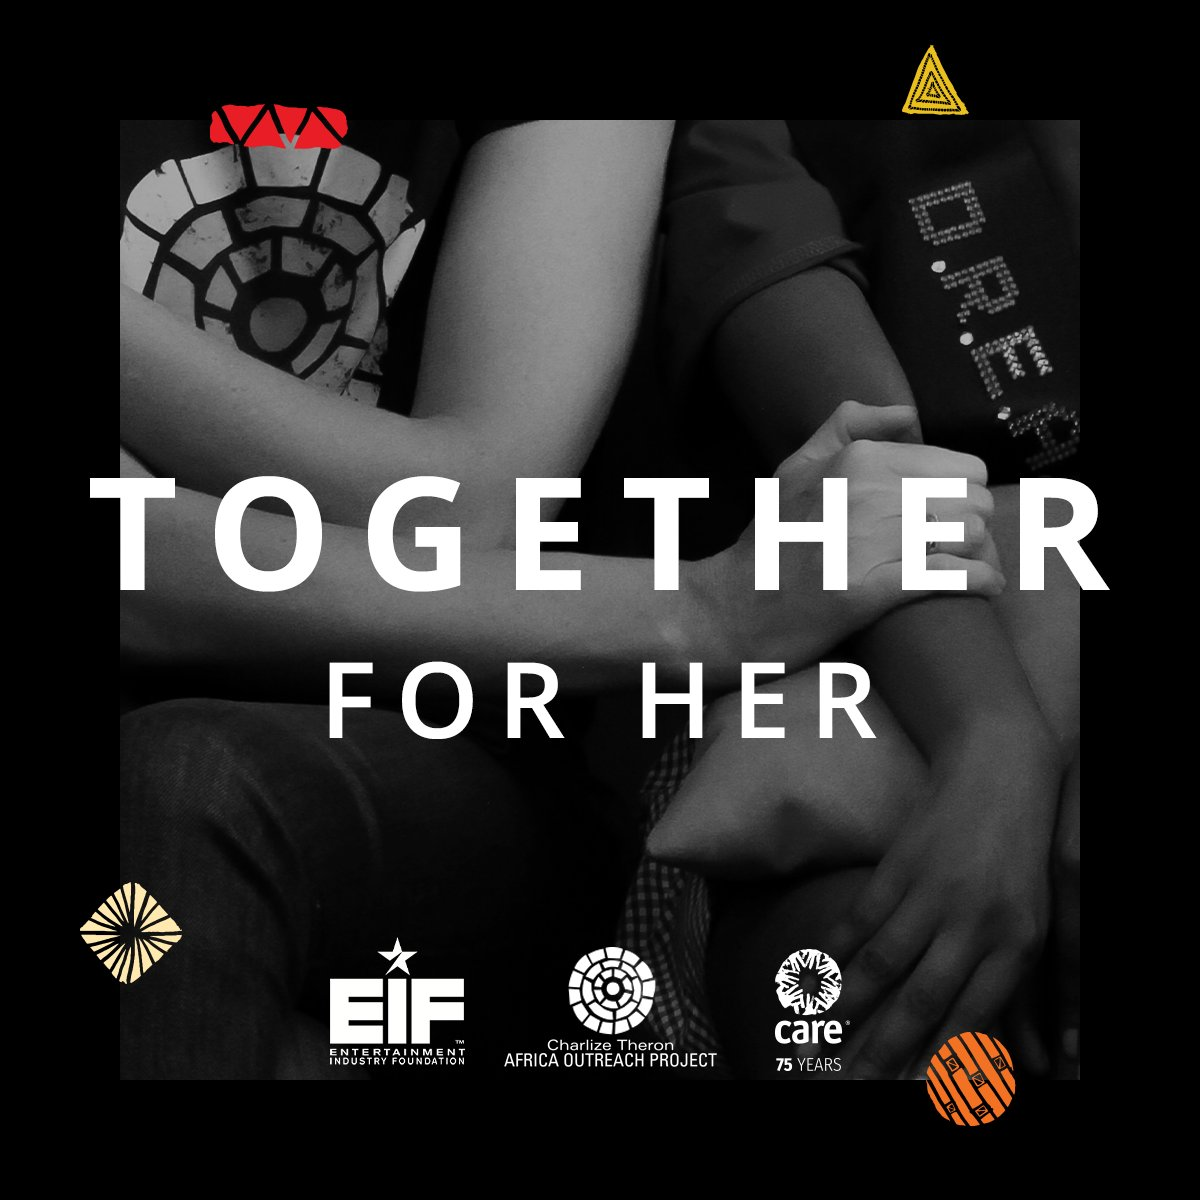 I'm standing #TogetherForHer, in support of women & children experiencing domestic violence in the time of #COVID19. @CharlizeAfrica, @CTAOP, @CARE & @EIFoundation are spotlighting & funding interventions to keep women & girls safe from abuse. Join us: https://t.co/0Z2k49Zf23 https://t.co/PsSG2wglej